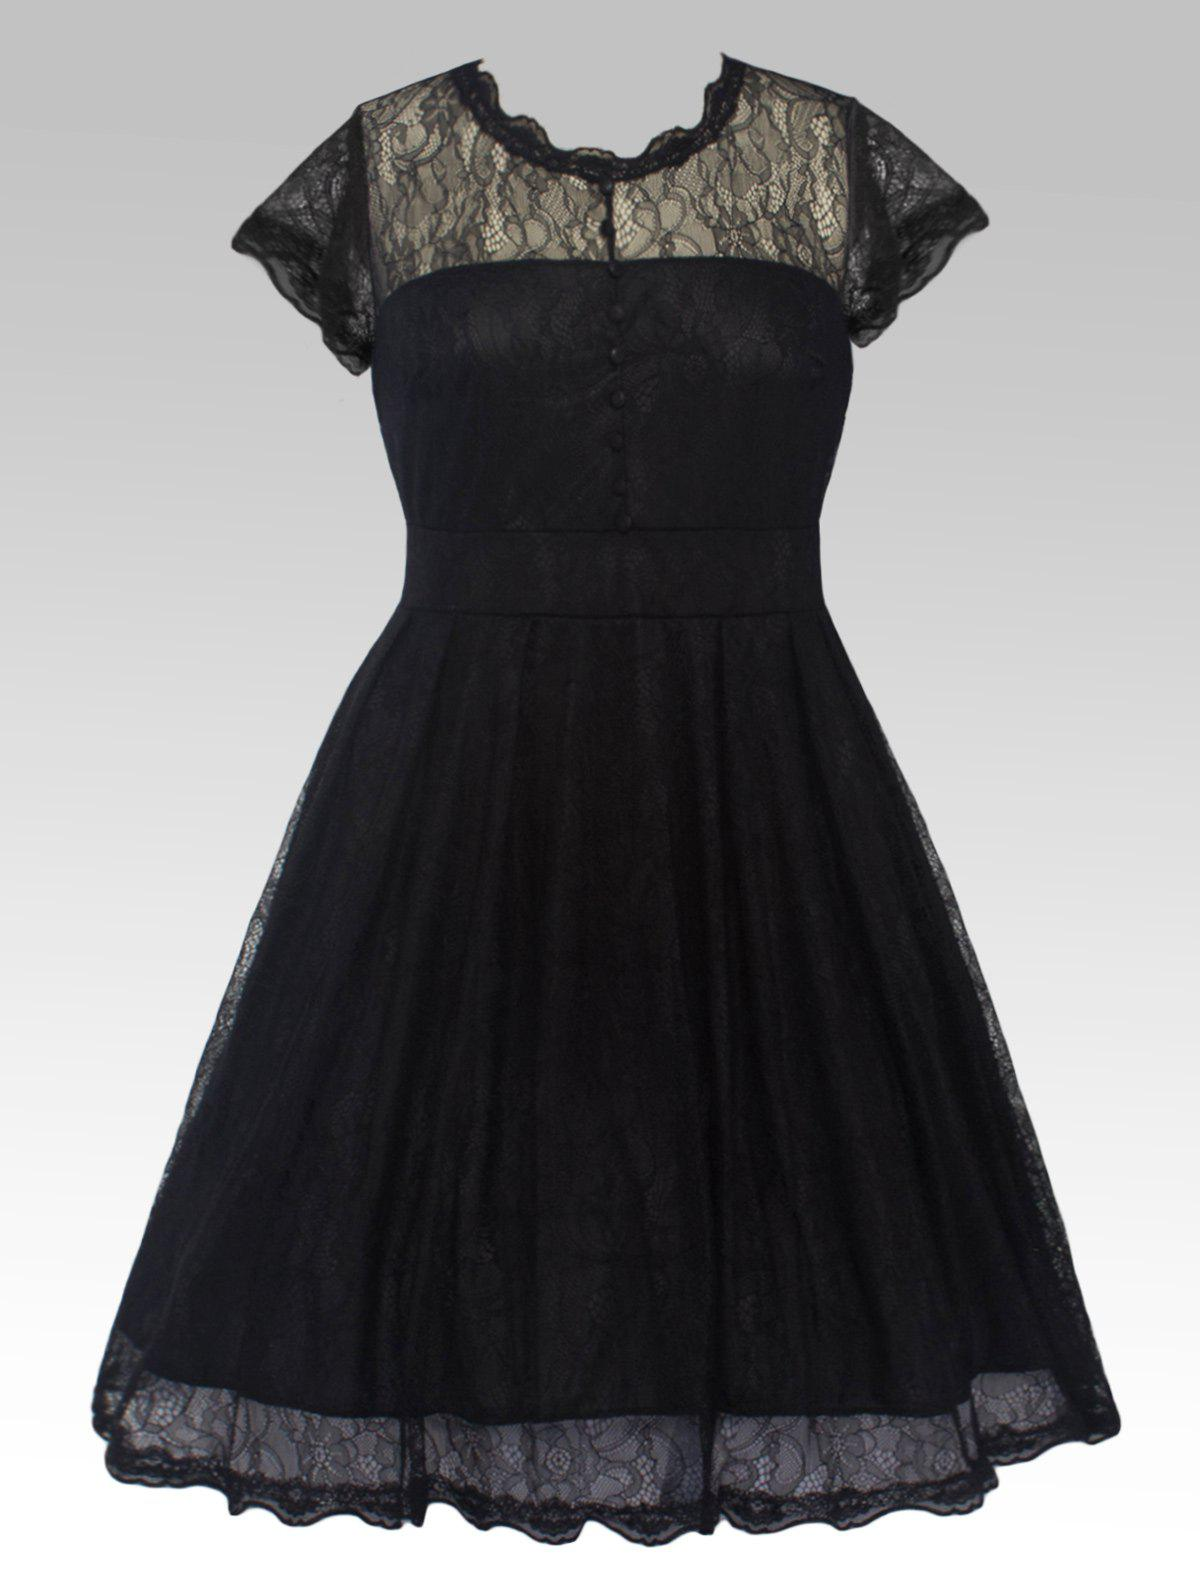 Buttoned Swing Vintage Plus Size A Line Lace DressWOMEN<br><br>Size: 5XL; Color: BLACK; Style: Vintage; Material: Lace,Polyester; Silhouette: A-Line; Dresses Length: Knee-Length; Neckline: Ruffled; Sleeve Length: Short Sleeves; Embellishment: Lace; Pattern Type: Floral; With Belt: No; Season: Fall,Spring,Summer; Weight: 0.3200kg; Package Contents: 1 x Dress;